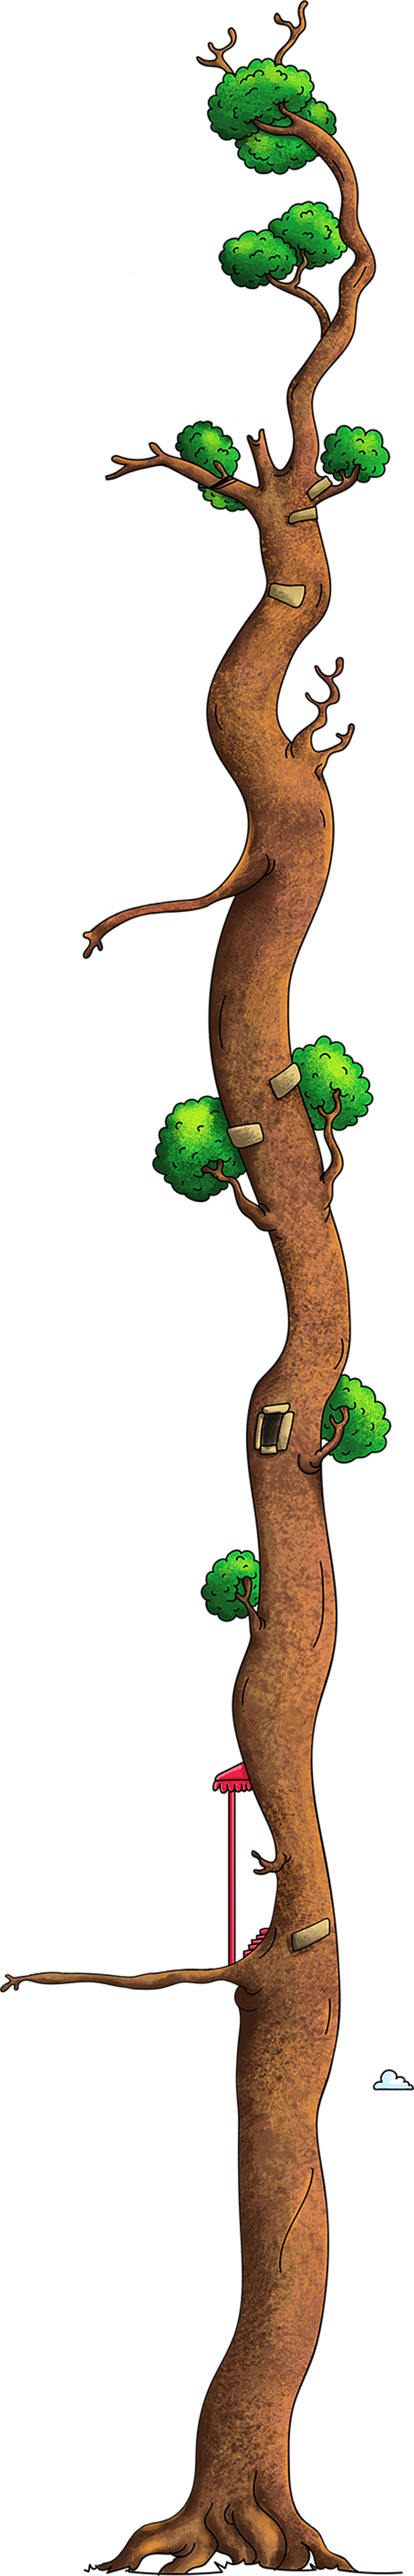 Tree_02.png